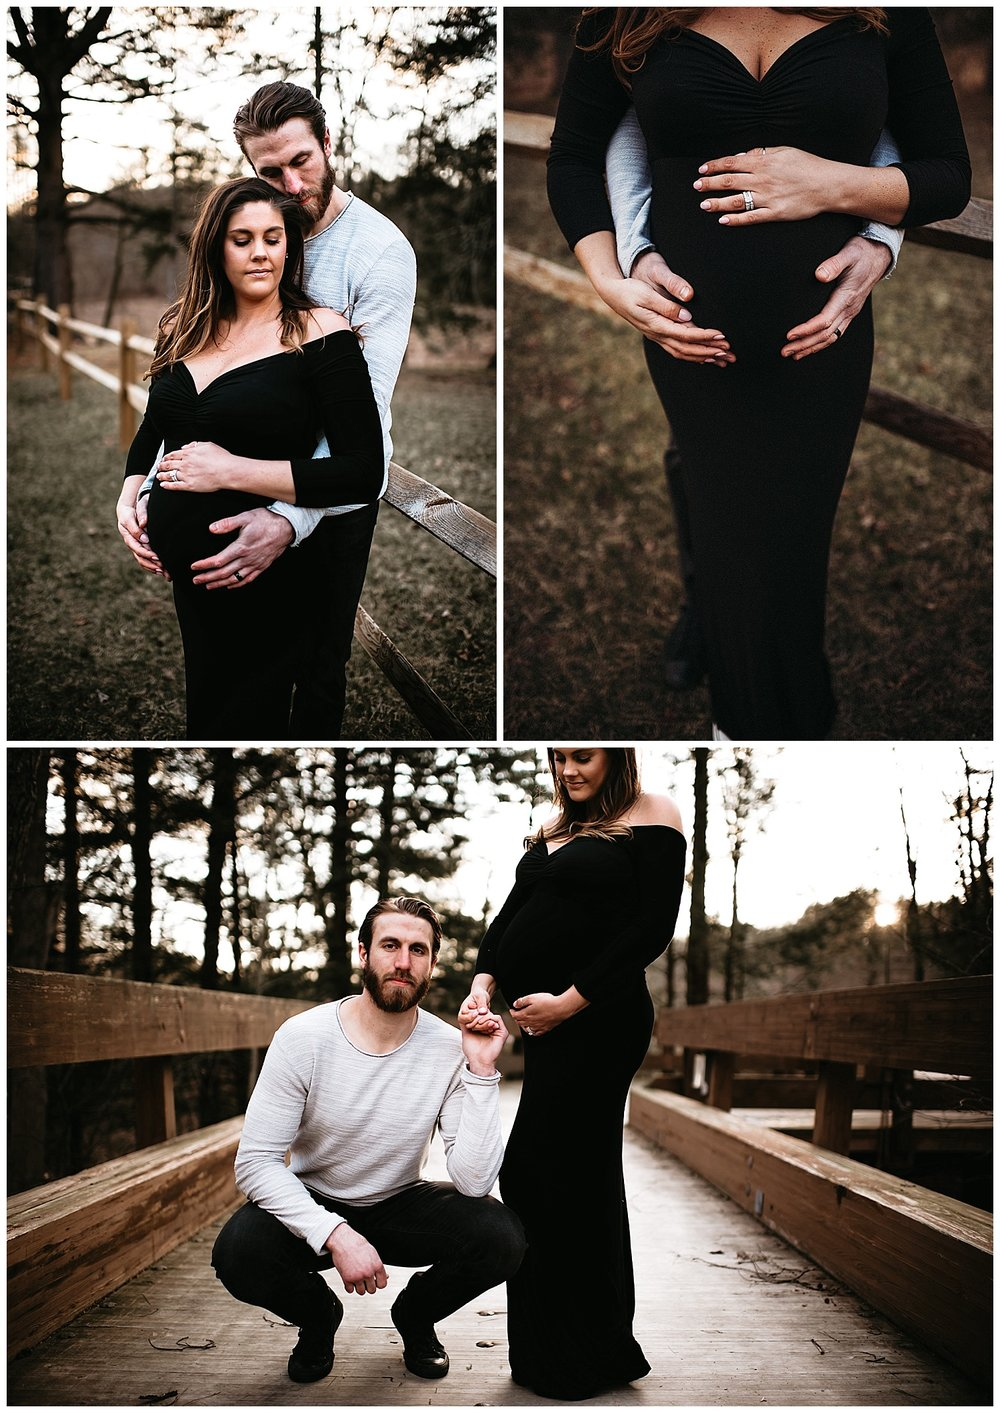 NEPA-Maternity-newborn-photographer-Wilkes-Bare-PA-Drums_0070.jpg